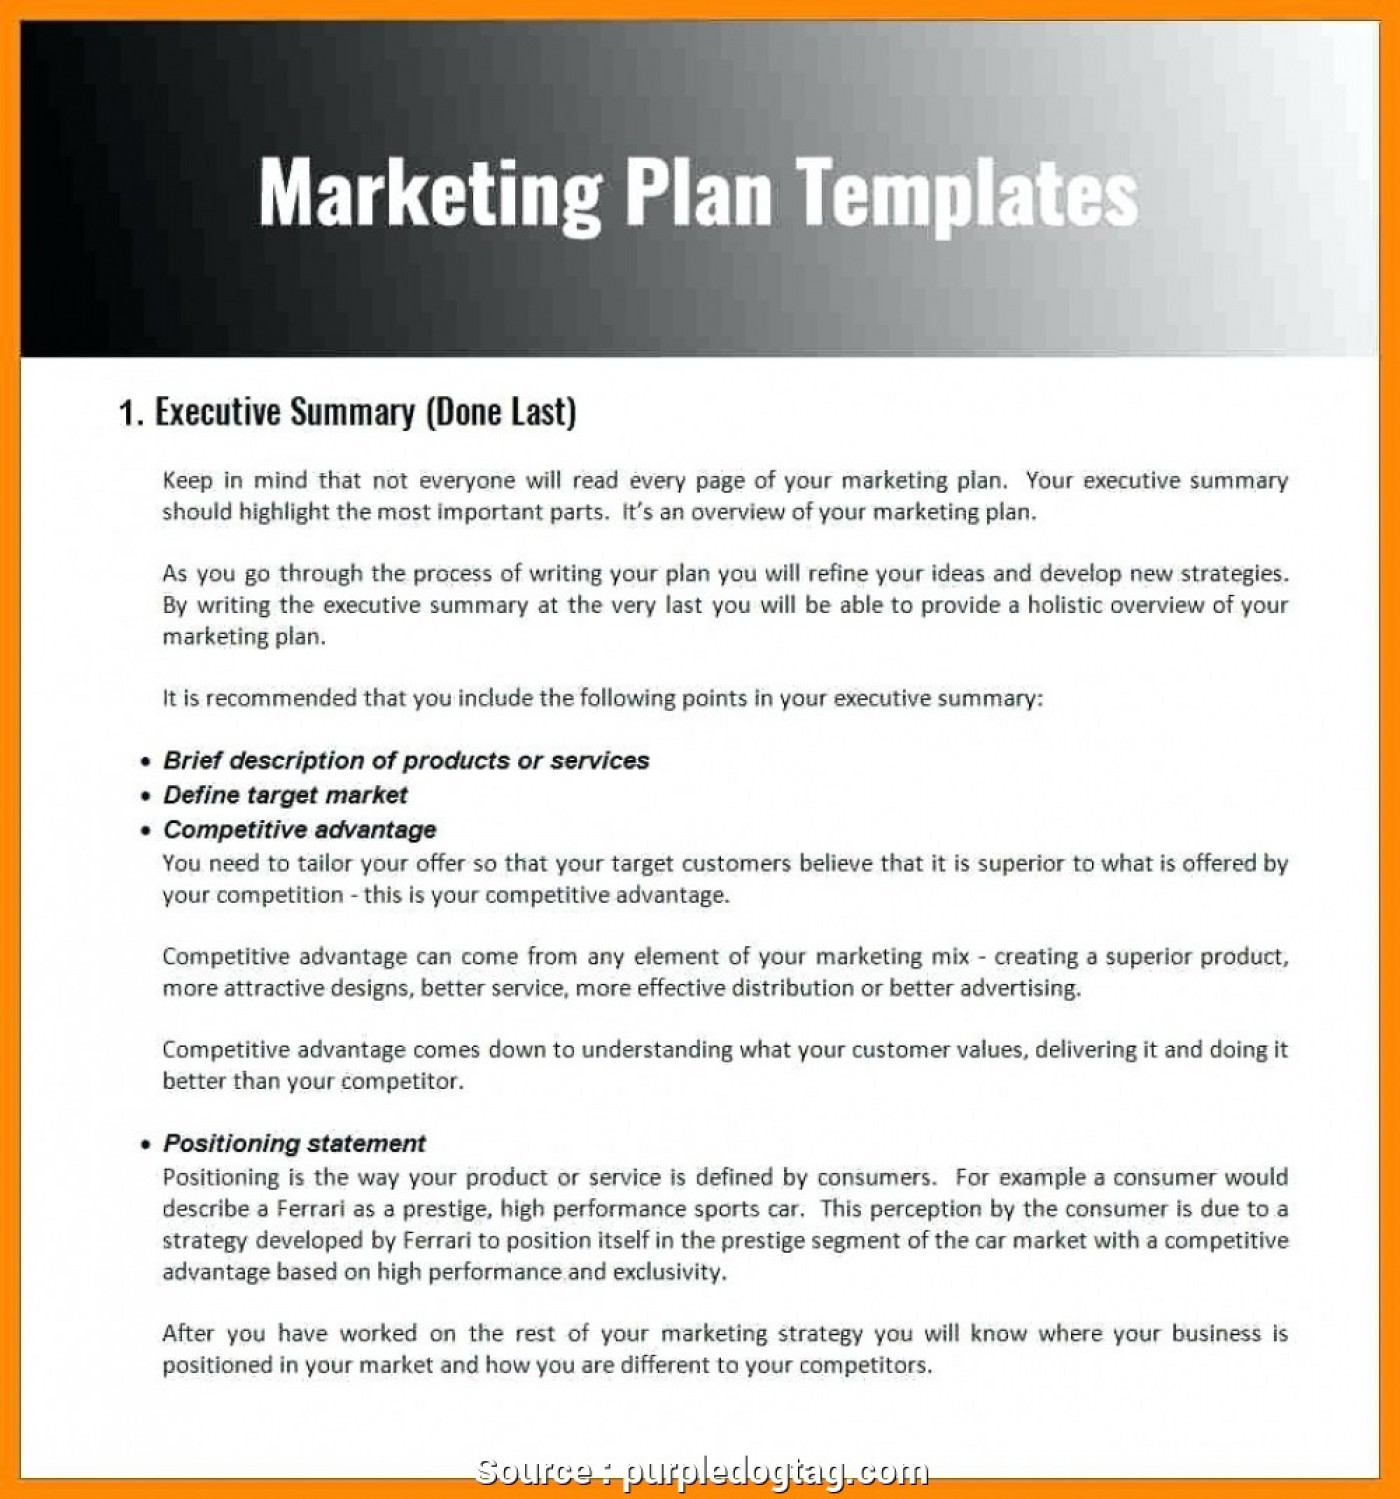 024 Research Paper 20market Plan20mplate Digital Marketing Pdf Study Music Presentation Ppt Product20 Powerpointmat Unique Powerpoint Format For Sample 1400